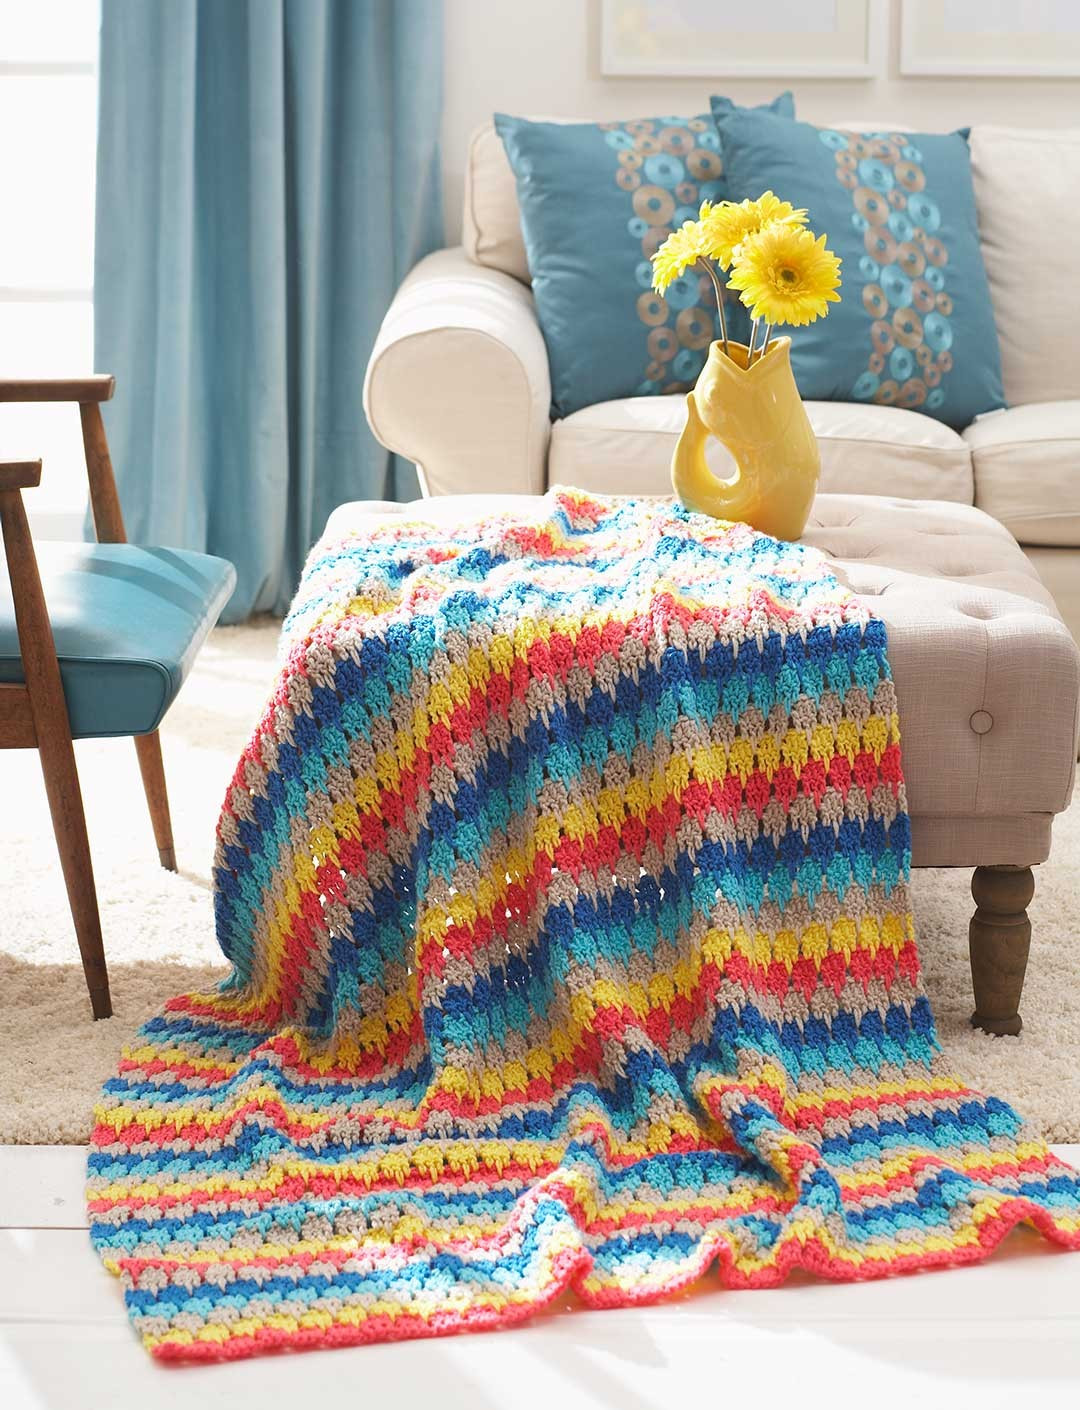 Bernat Larksfoot Blanket Crochet Pattern